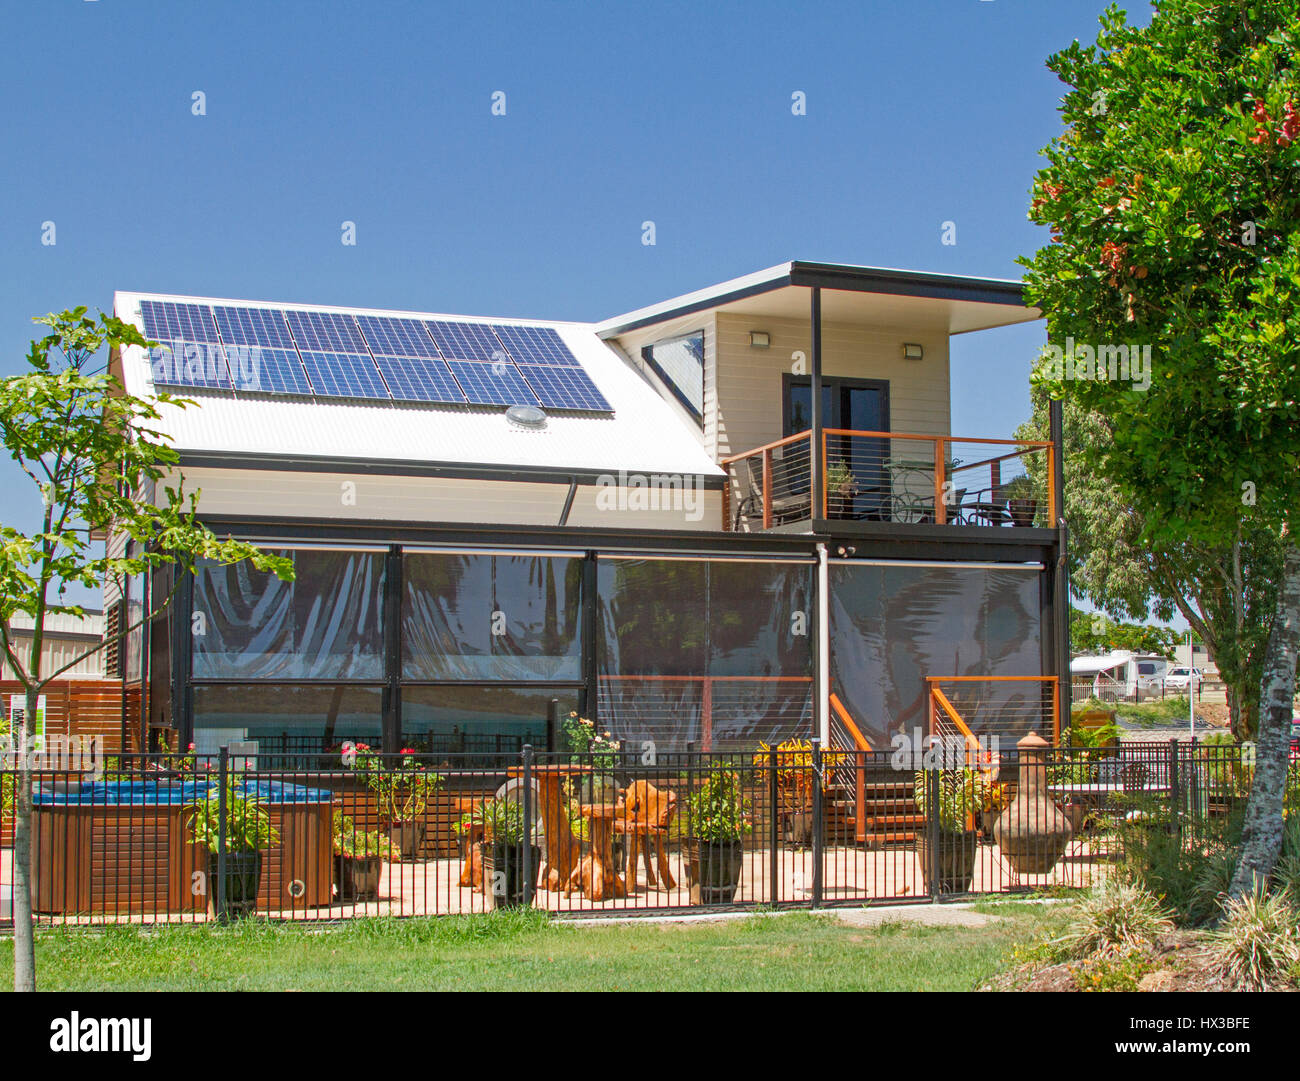 Plastic Bottle Caps Art Mary Ellen Croteau in addition Break Out Robert M Walker moreover 1100 6418741 furthermore Aws Adoption Rise Europe Asia Pacific also House M Daylit Japanese Home Preserves Privacy With A Beautiful Louvered Facade. on fence shading